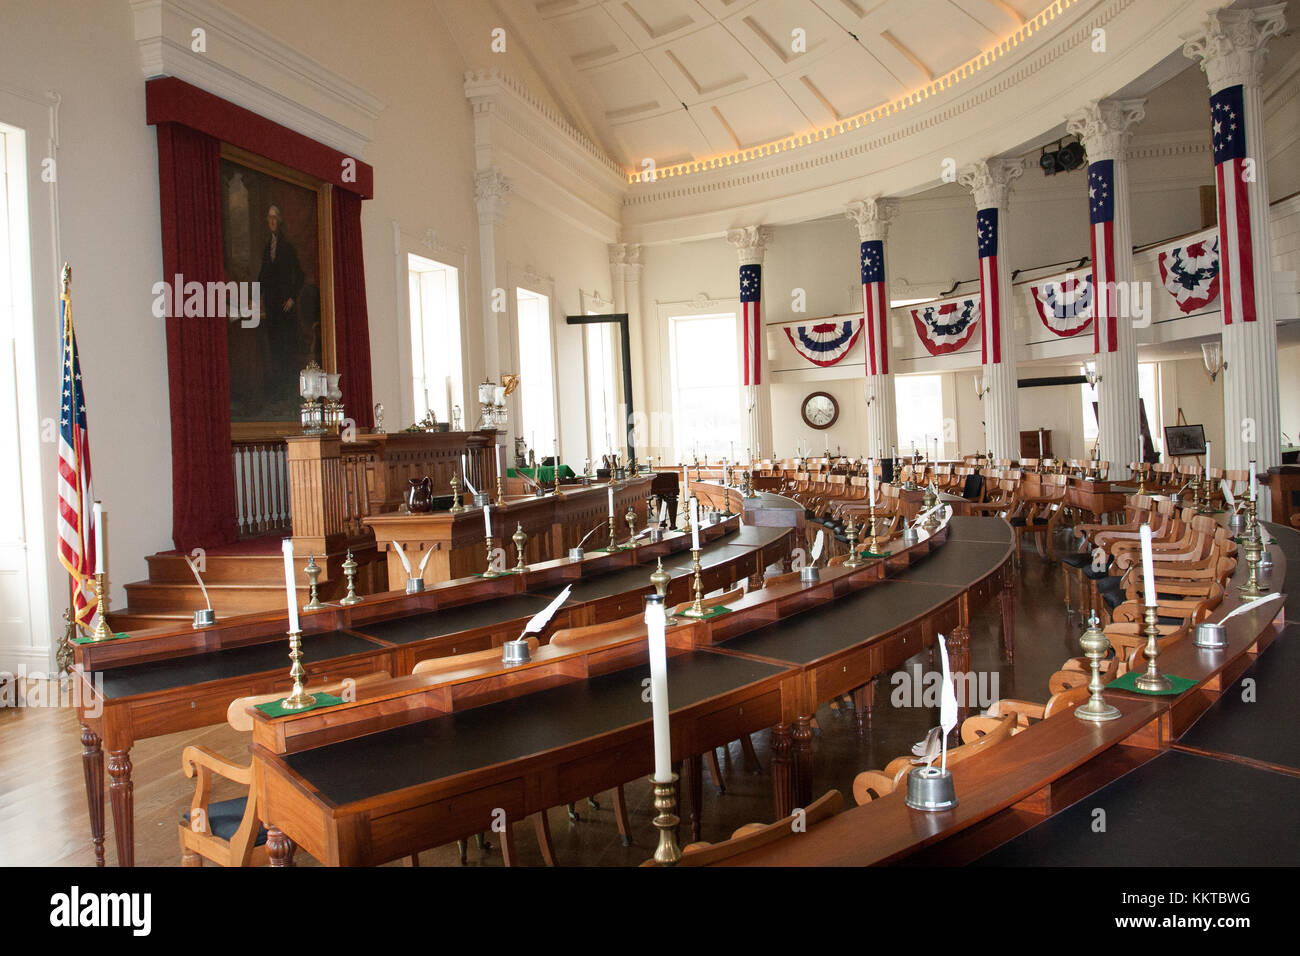 Springfield, Illinois, USA. Sept 2010 -Old State Capitol and Chamber of Representatives,historical building where - Stock Image